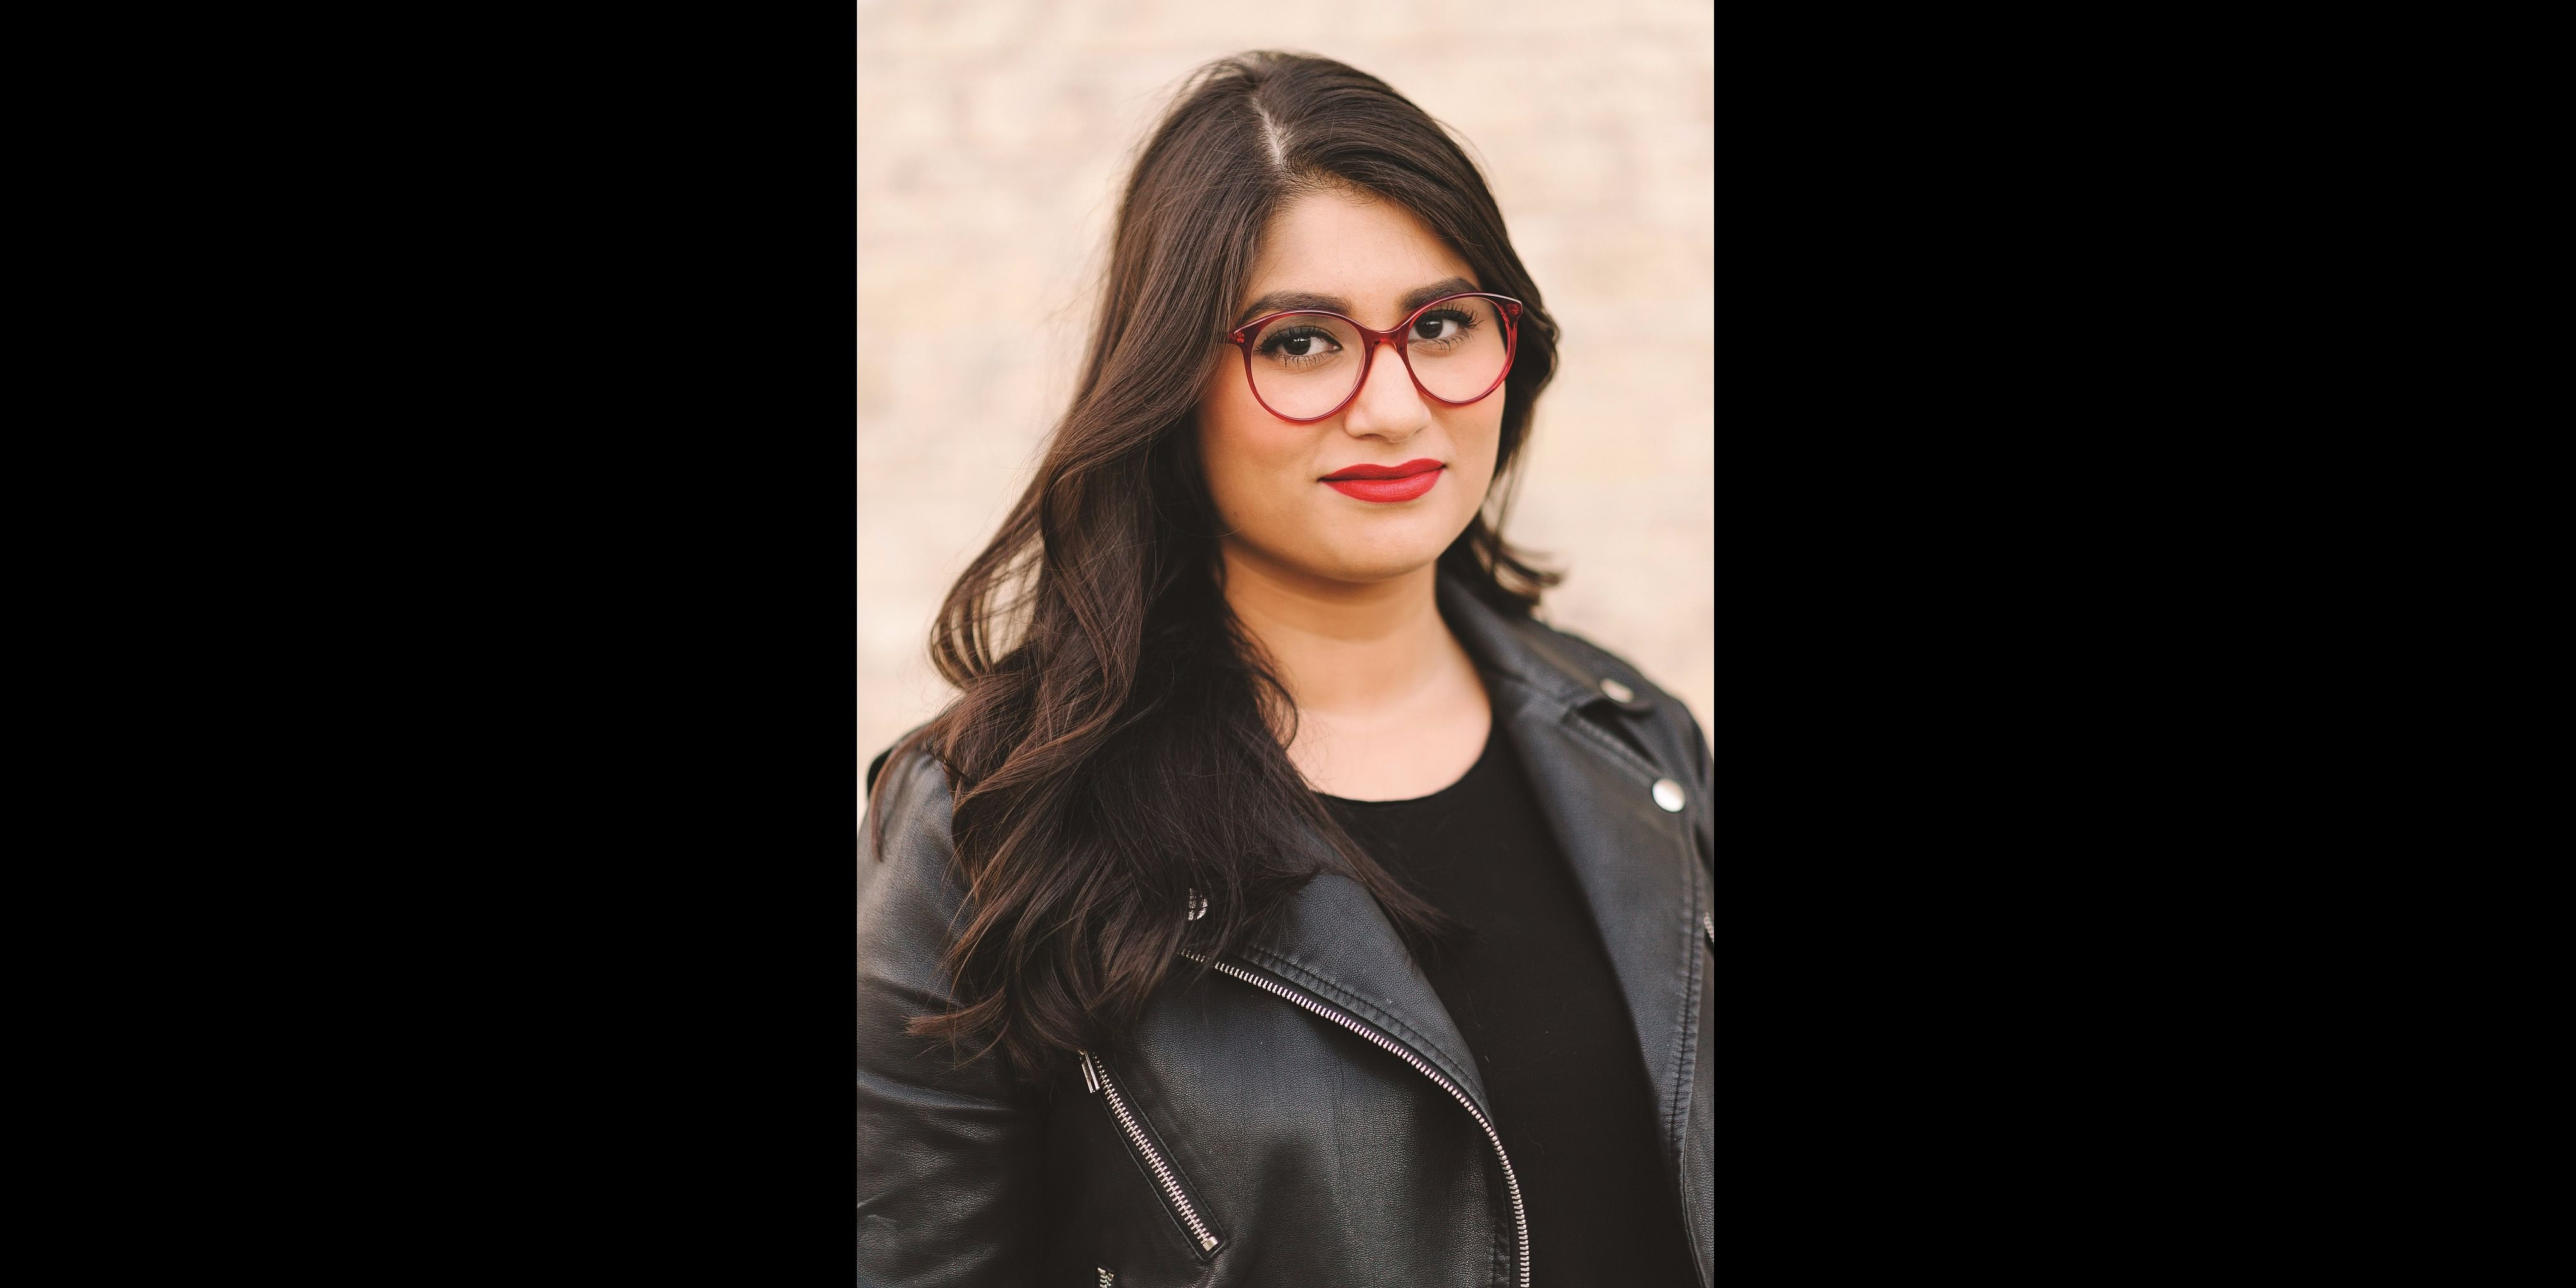 Scaachi Koul was born and raised in Calgary, Alberta, and is a culture writer at BuzzFeed. Her writing has also appeared in the <i>New Yorker, the Hairpin, the Globe and Mail etc.</i>